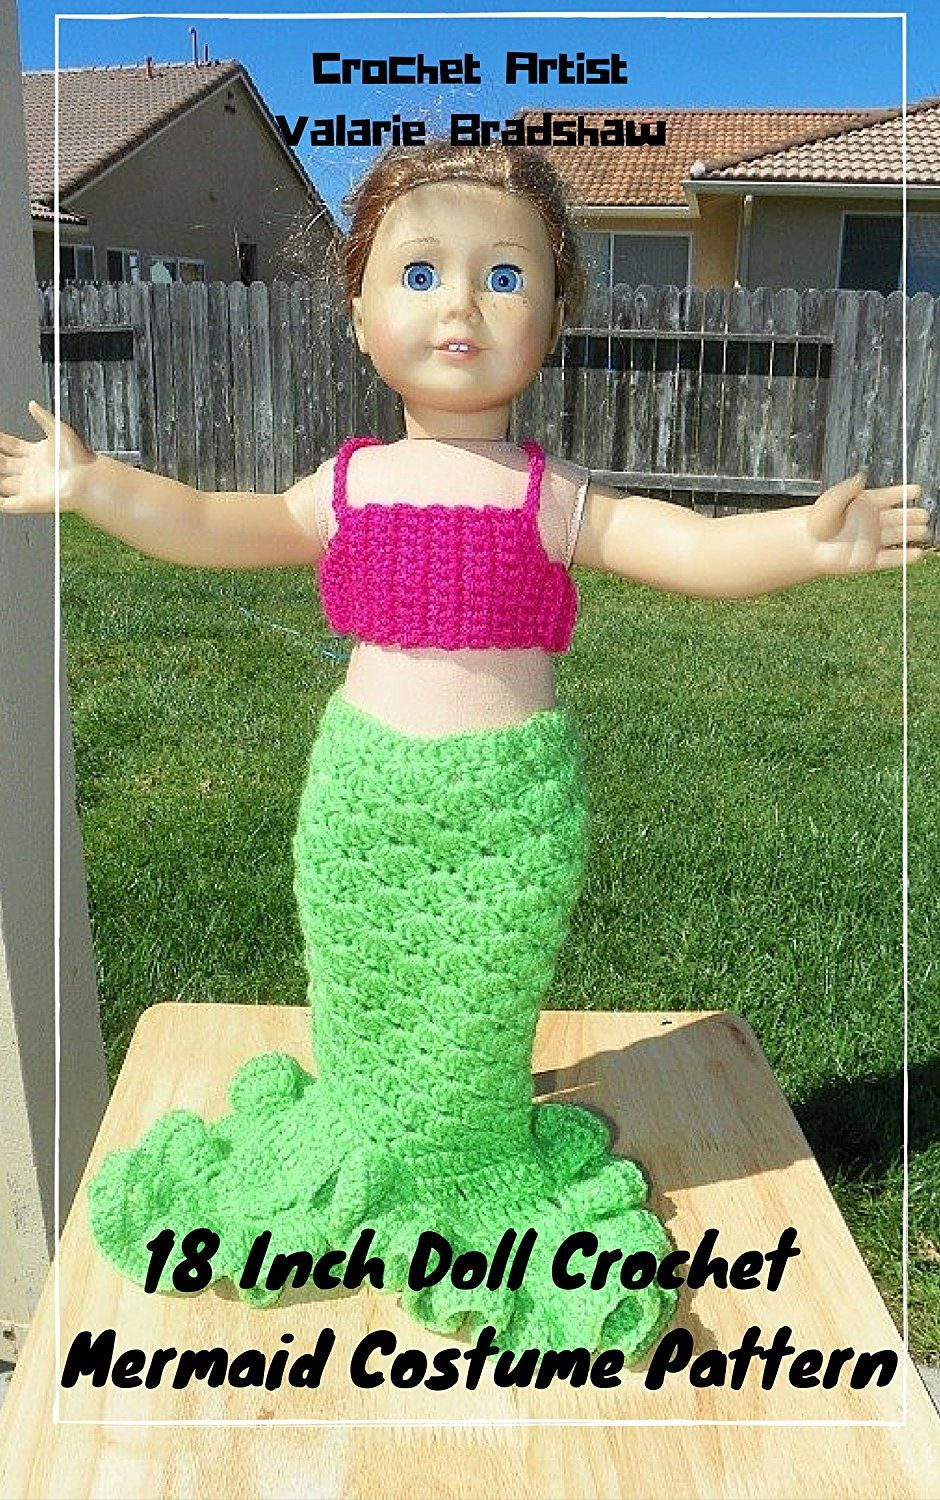 18 Inch Doll Crochet Mermaid Costume Pattern Worsted Weight Fits ...